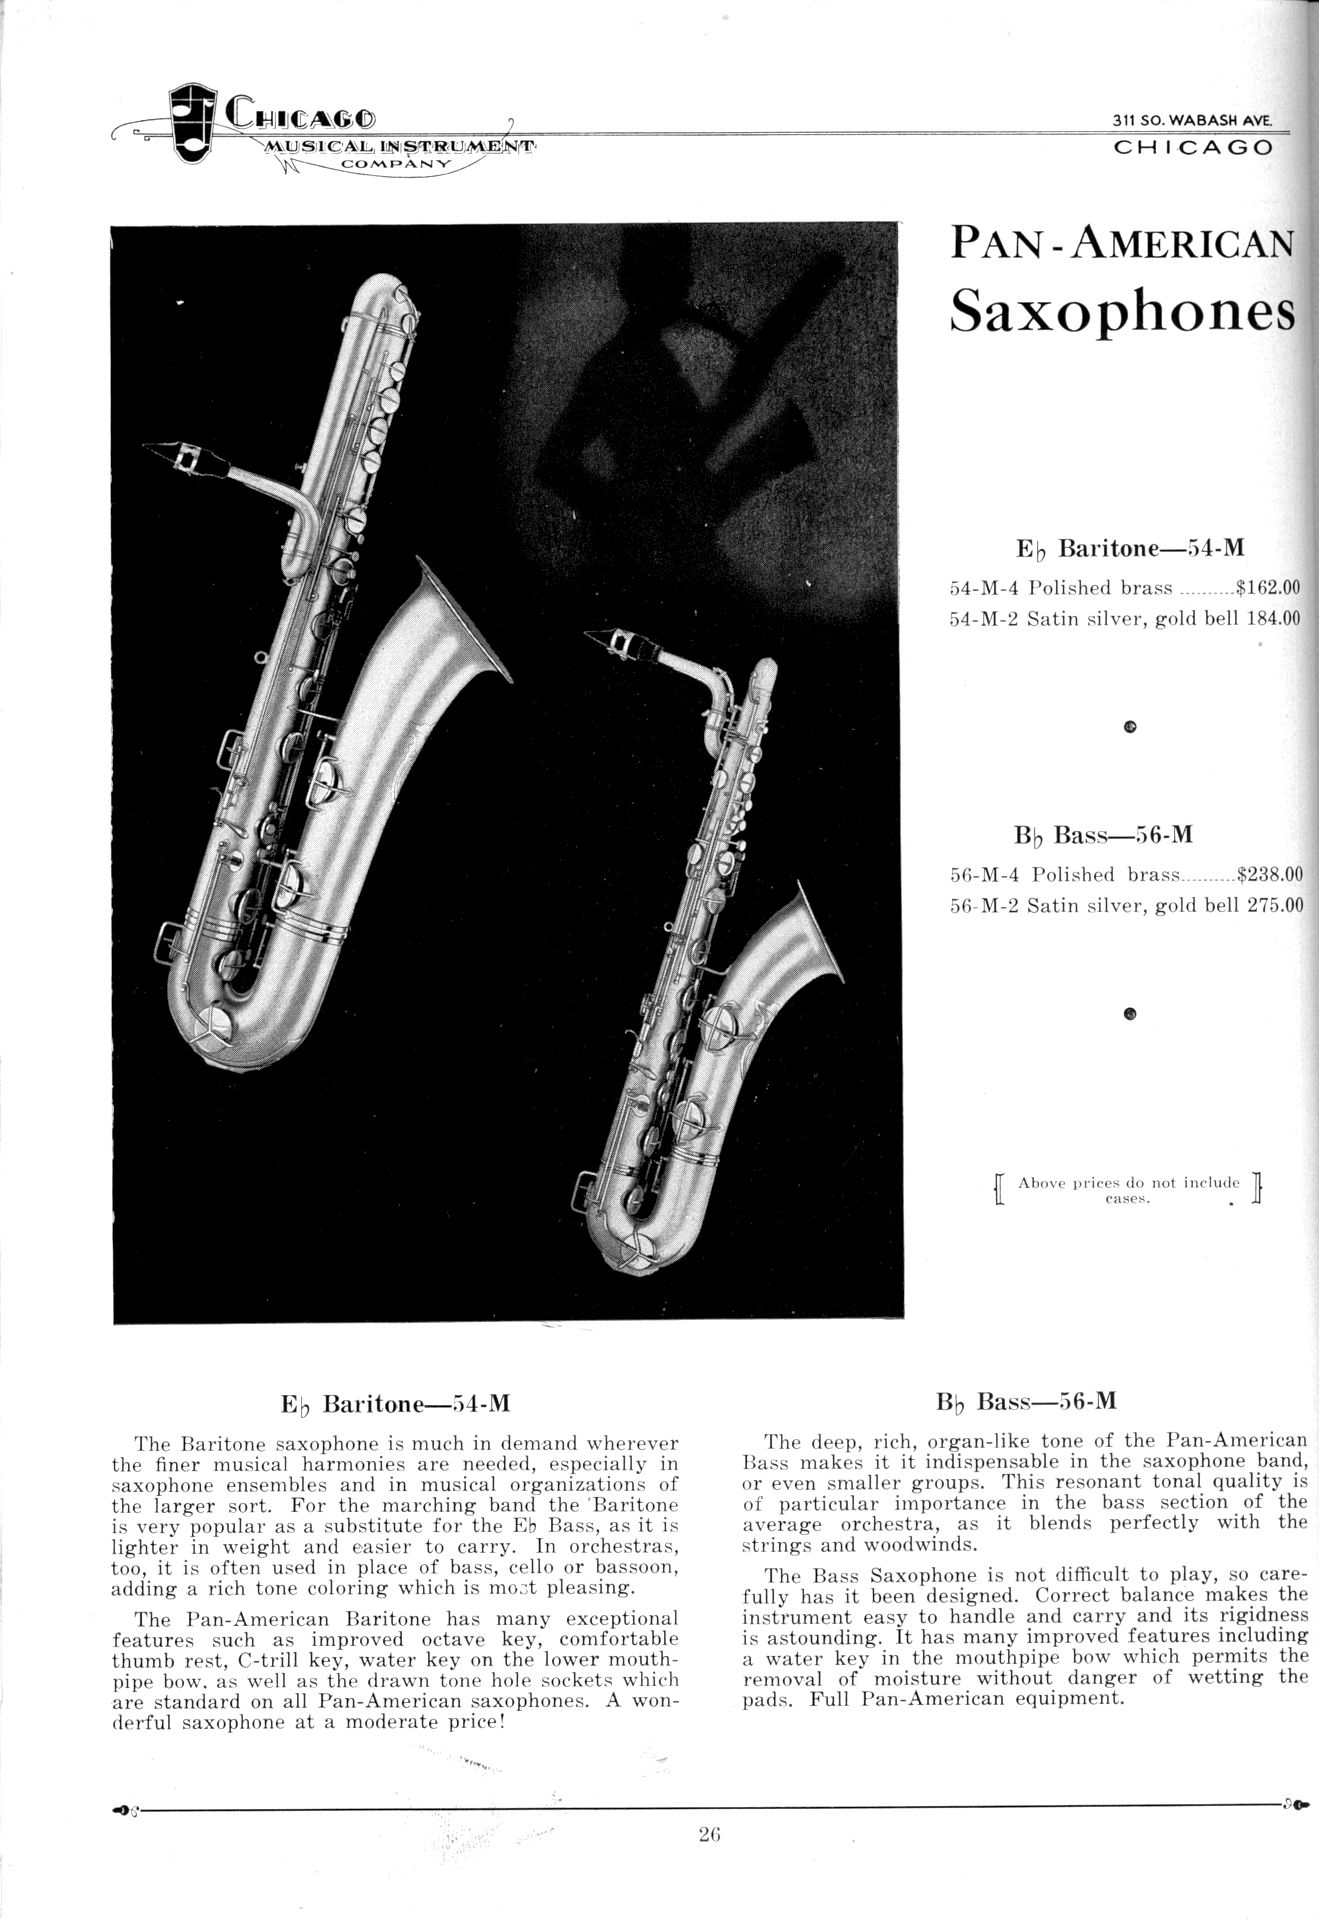 Pan American Saxophones From 1931 | The Bassic Sax Blog